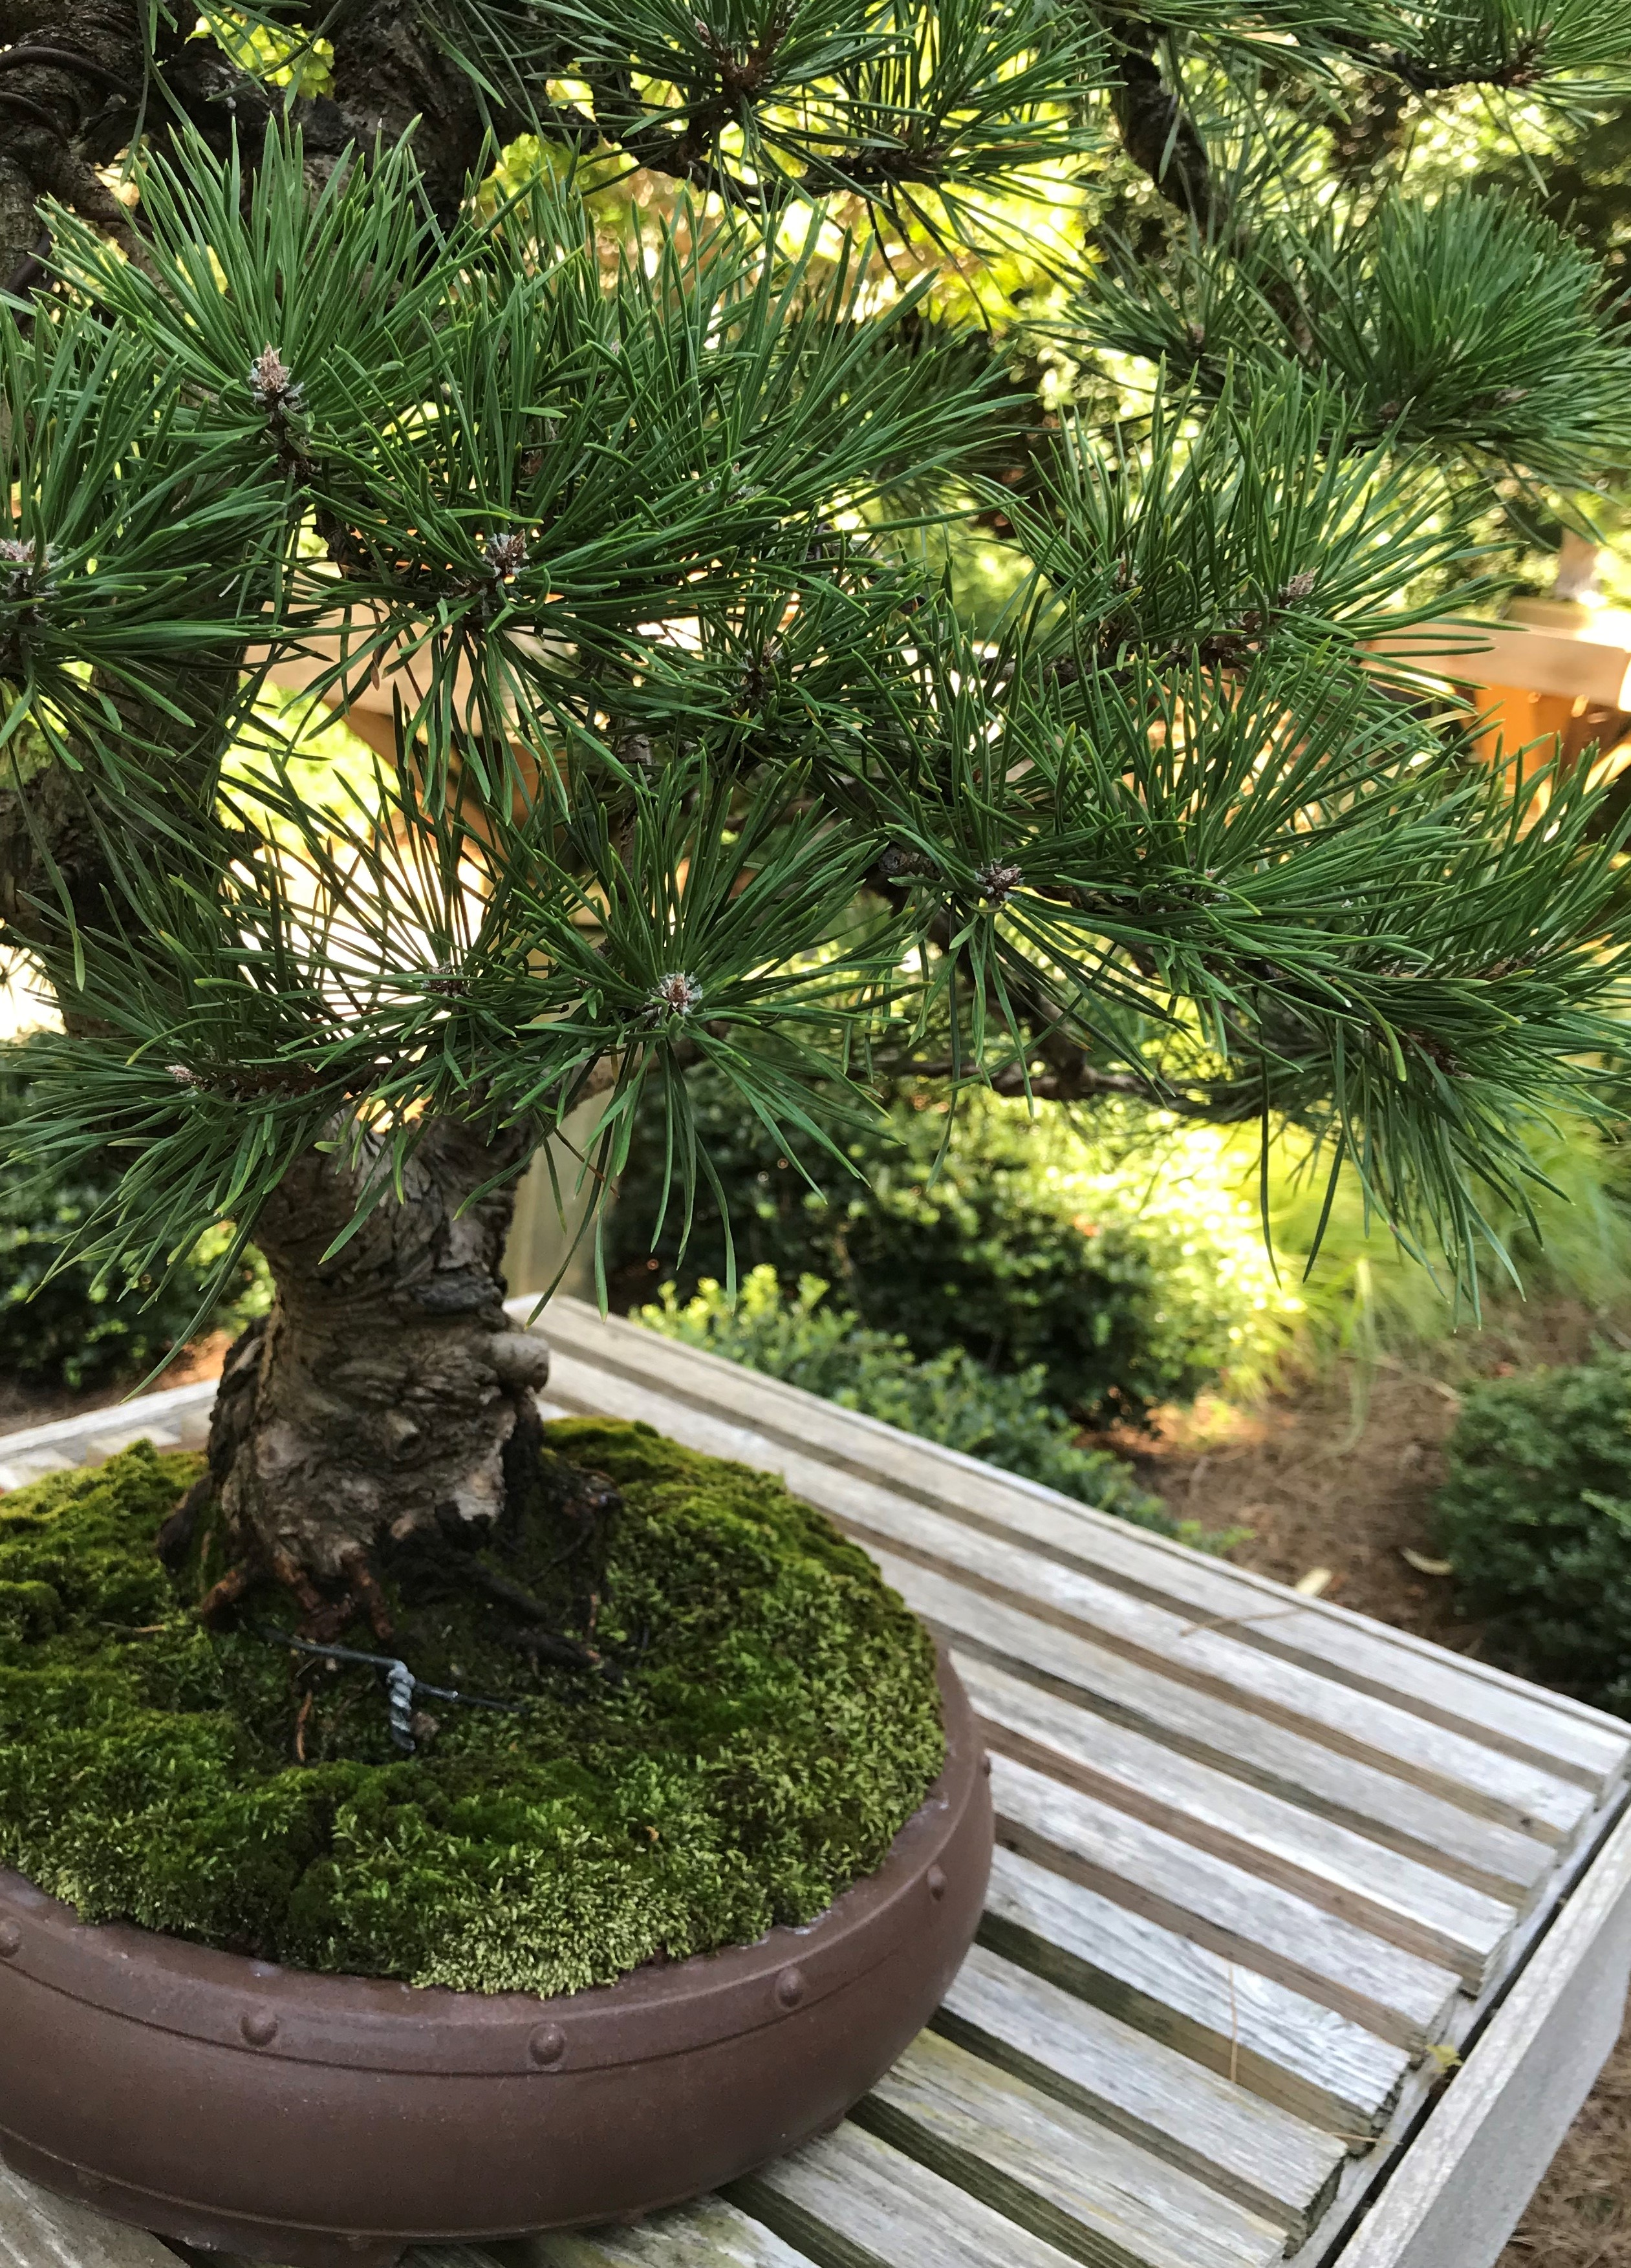 Bonsai Study Group: Application of Wire in Bonsai